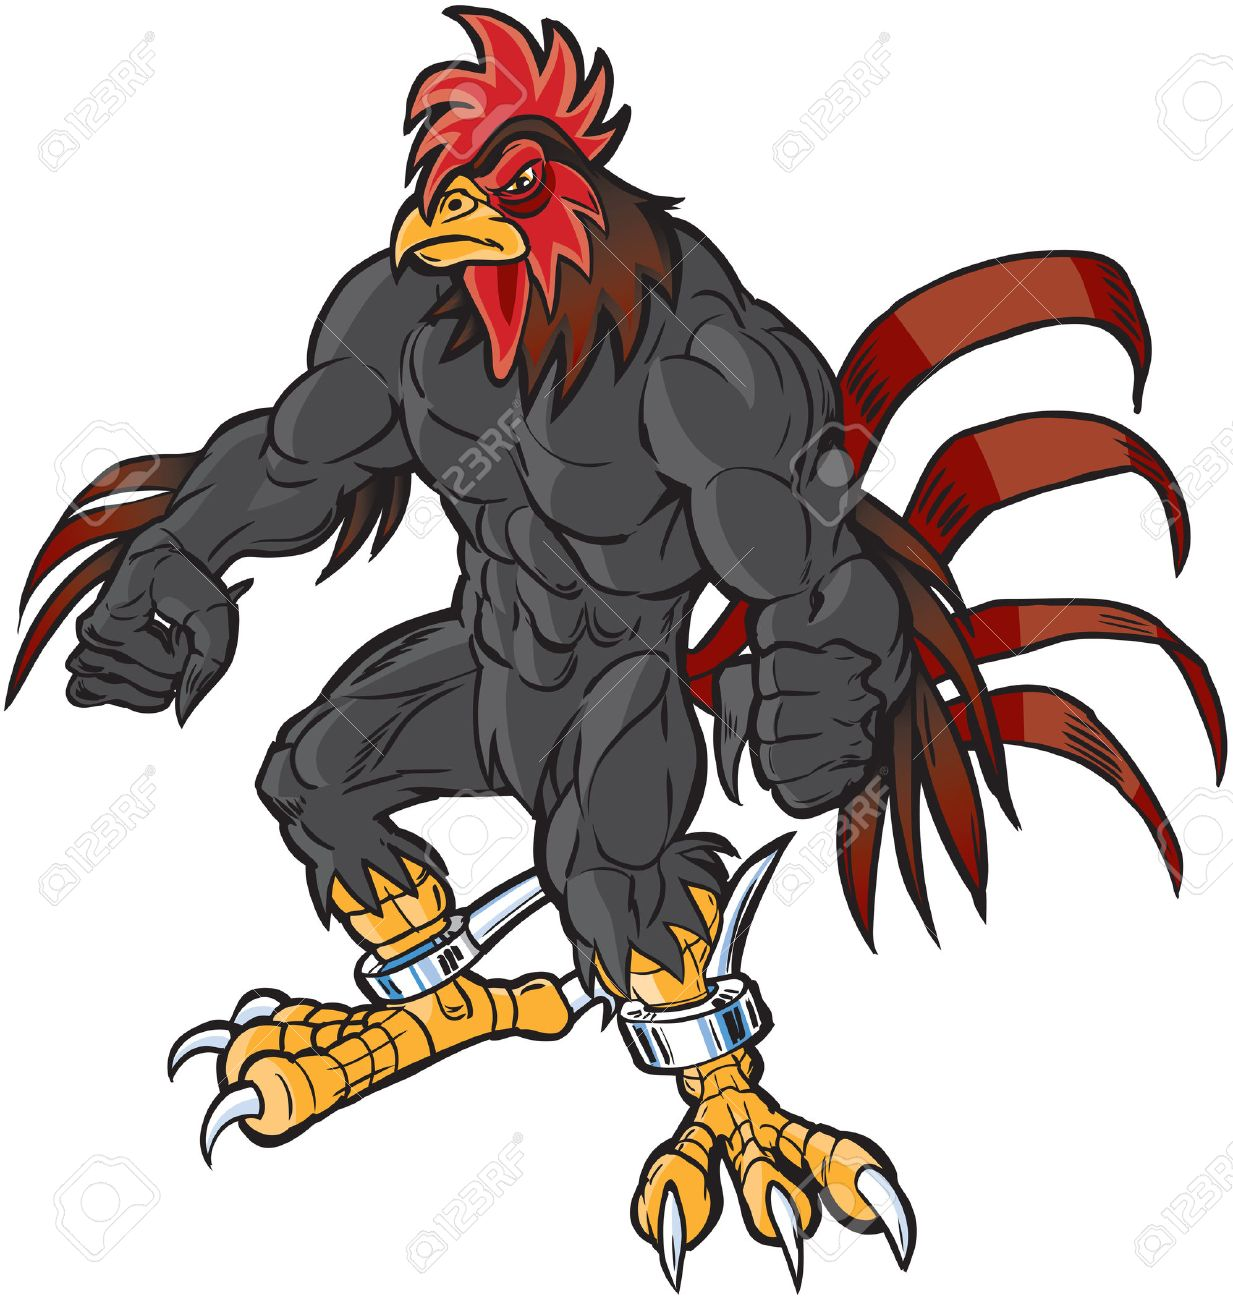 111 gamecock cliparts stock vector and royalty free gamecock rh 123rf com